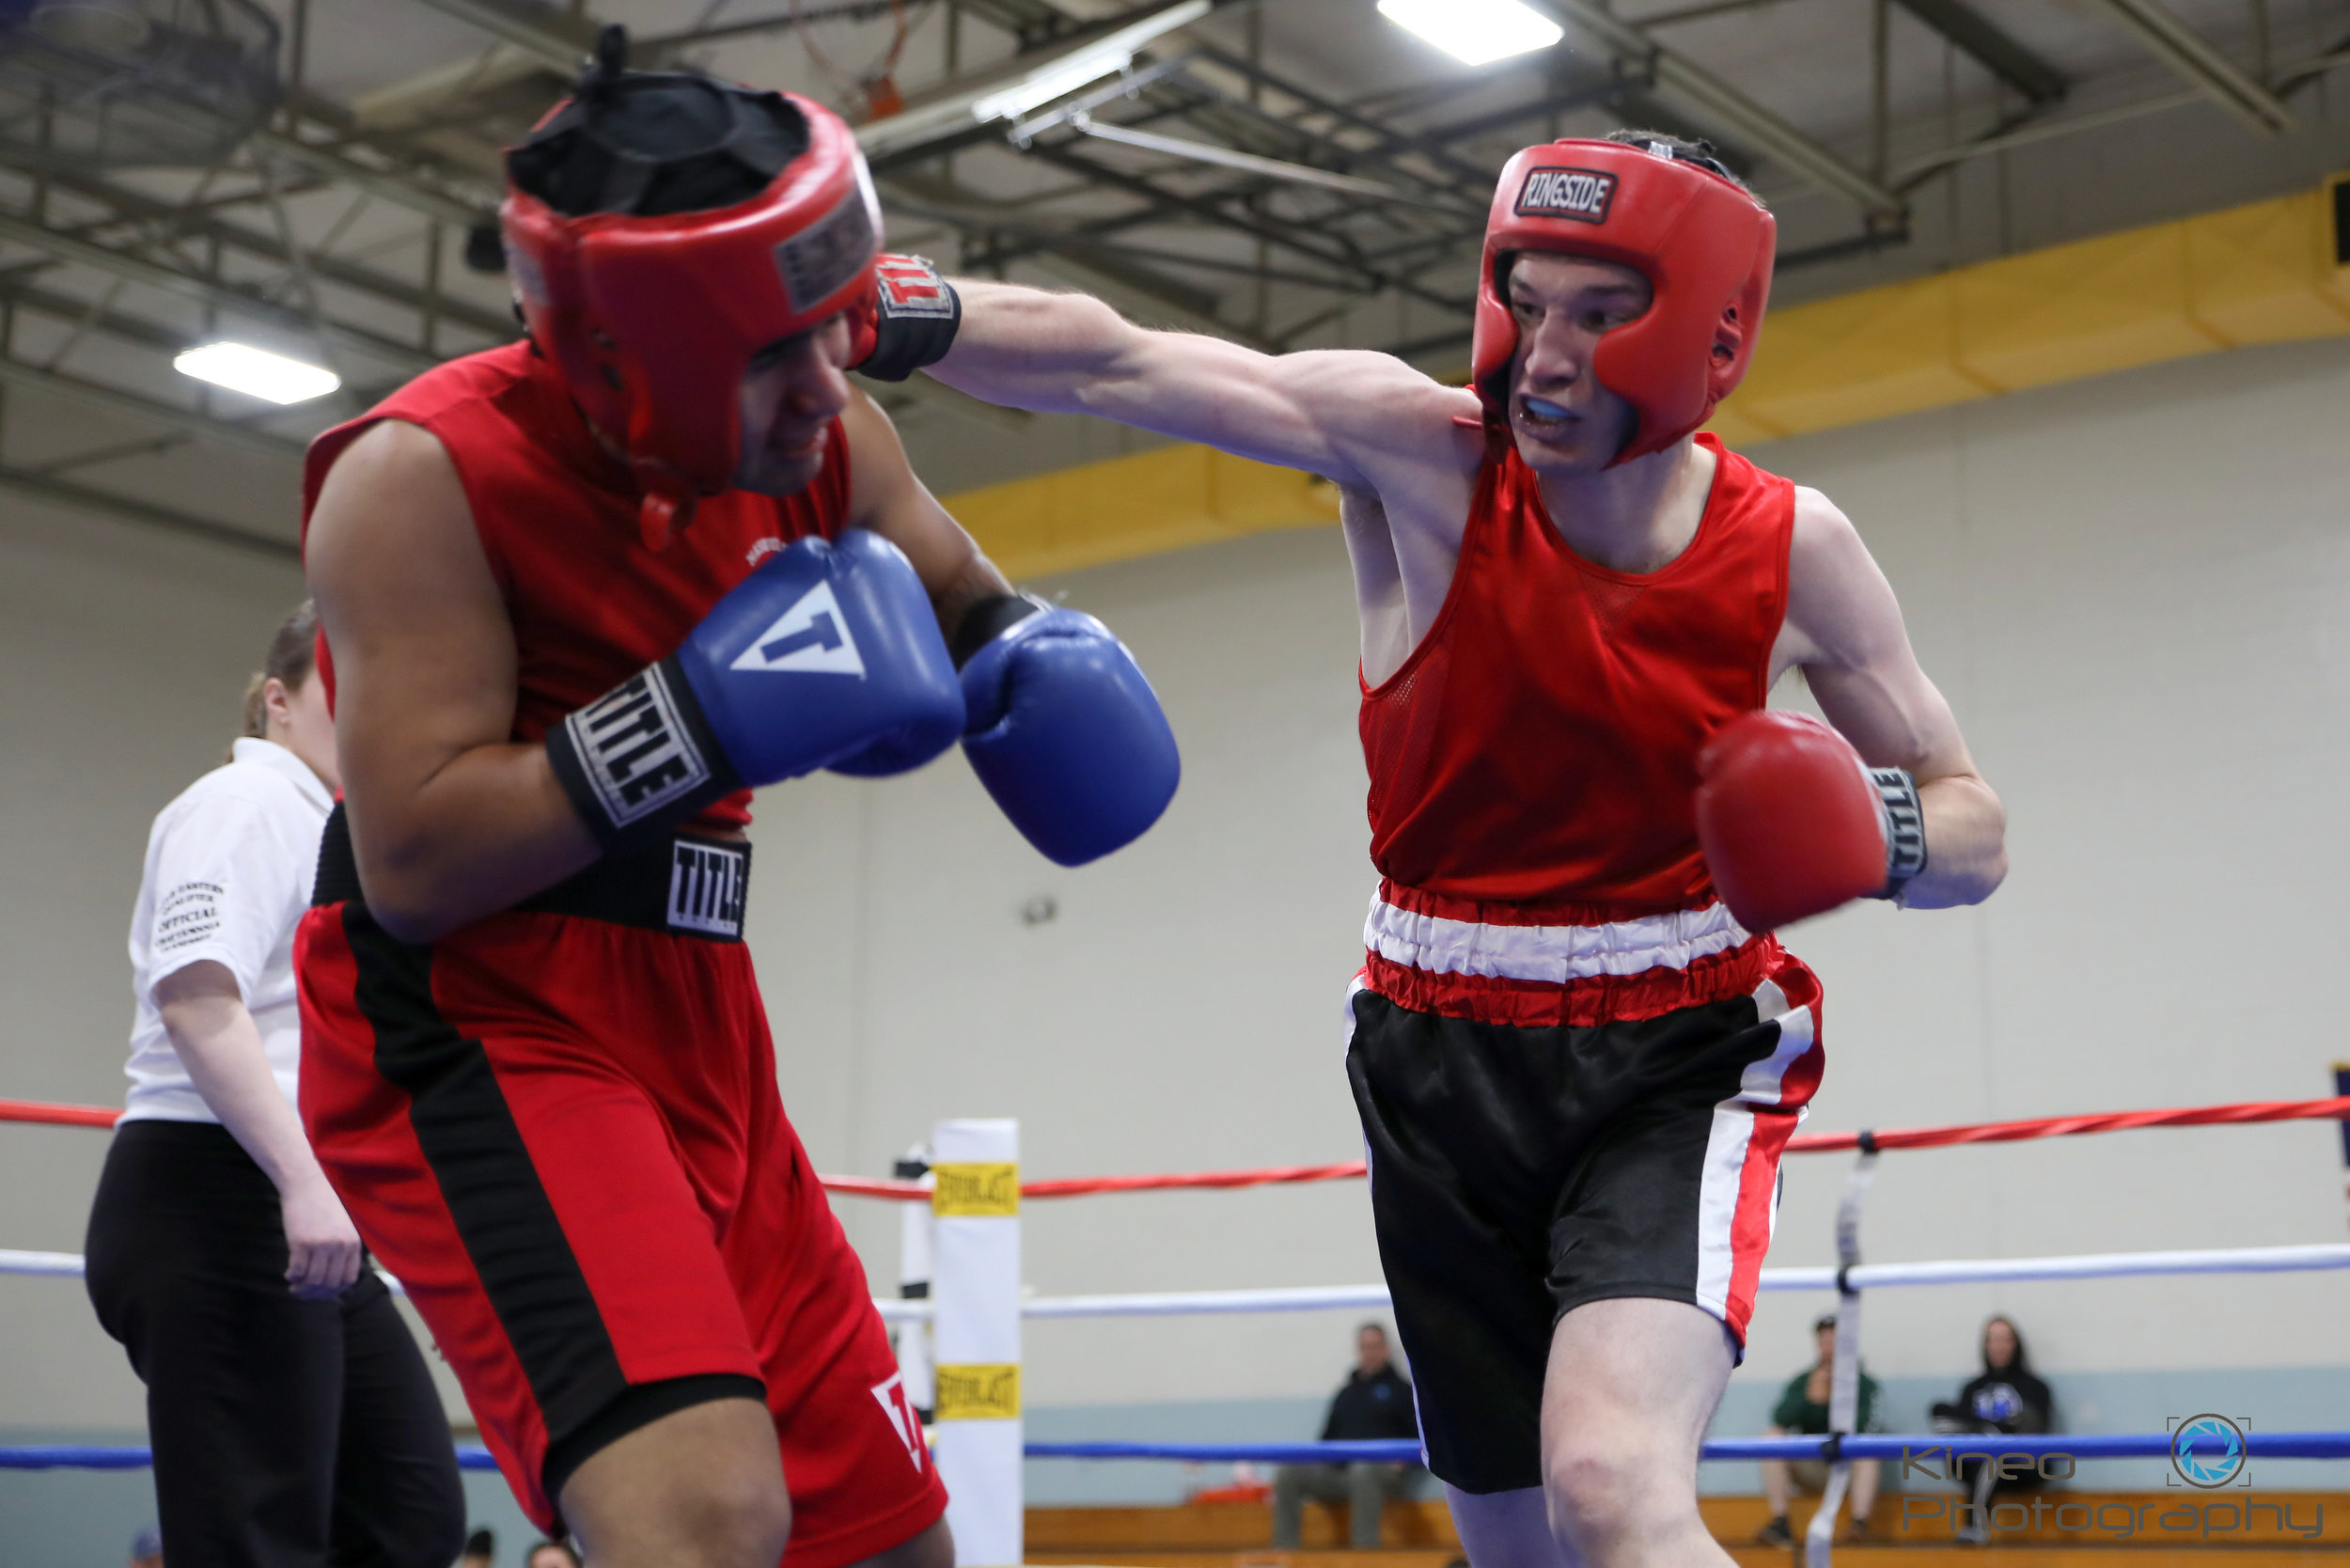 Portland Boxing Club's Alec Dacar (right) connects with Estevan Hincapie at Lewiston Fight Night on May 25, 2019.